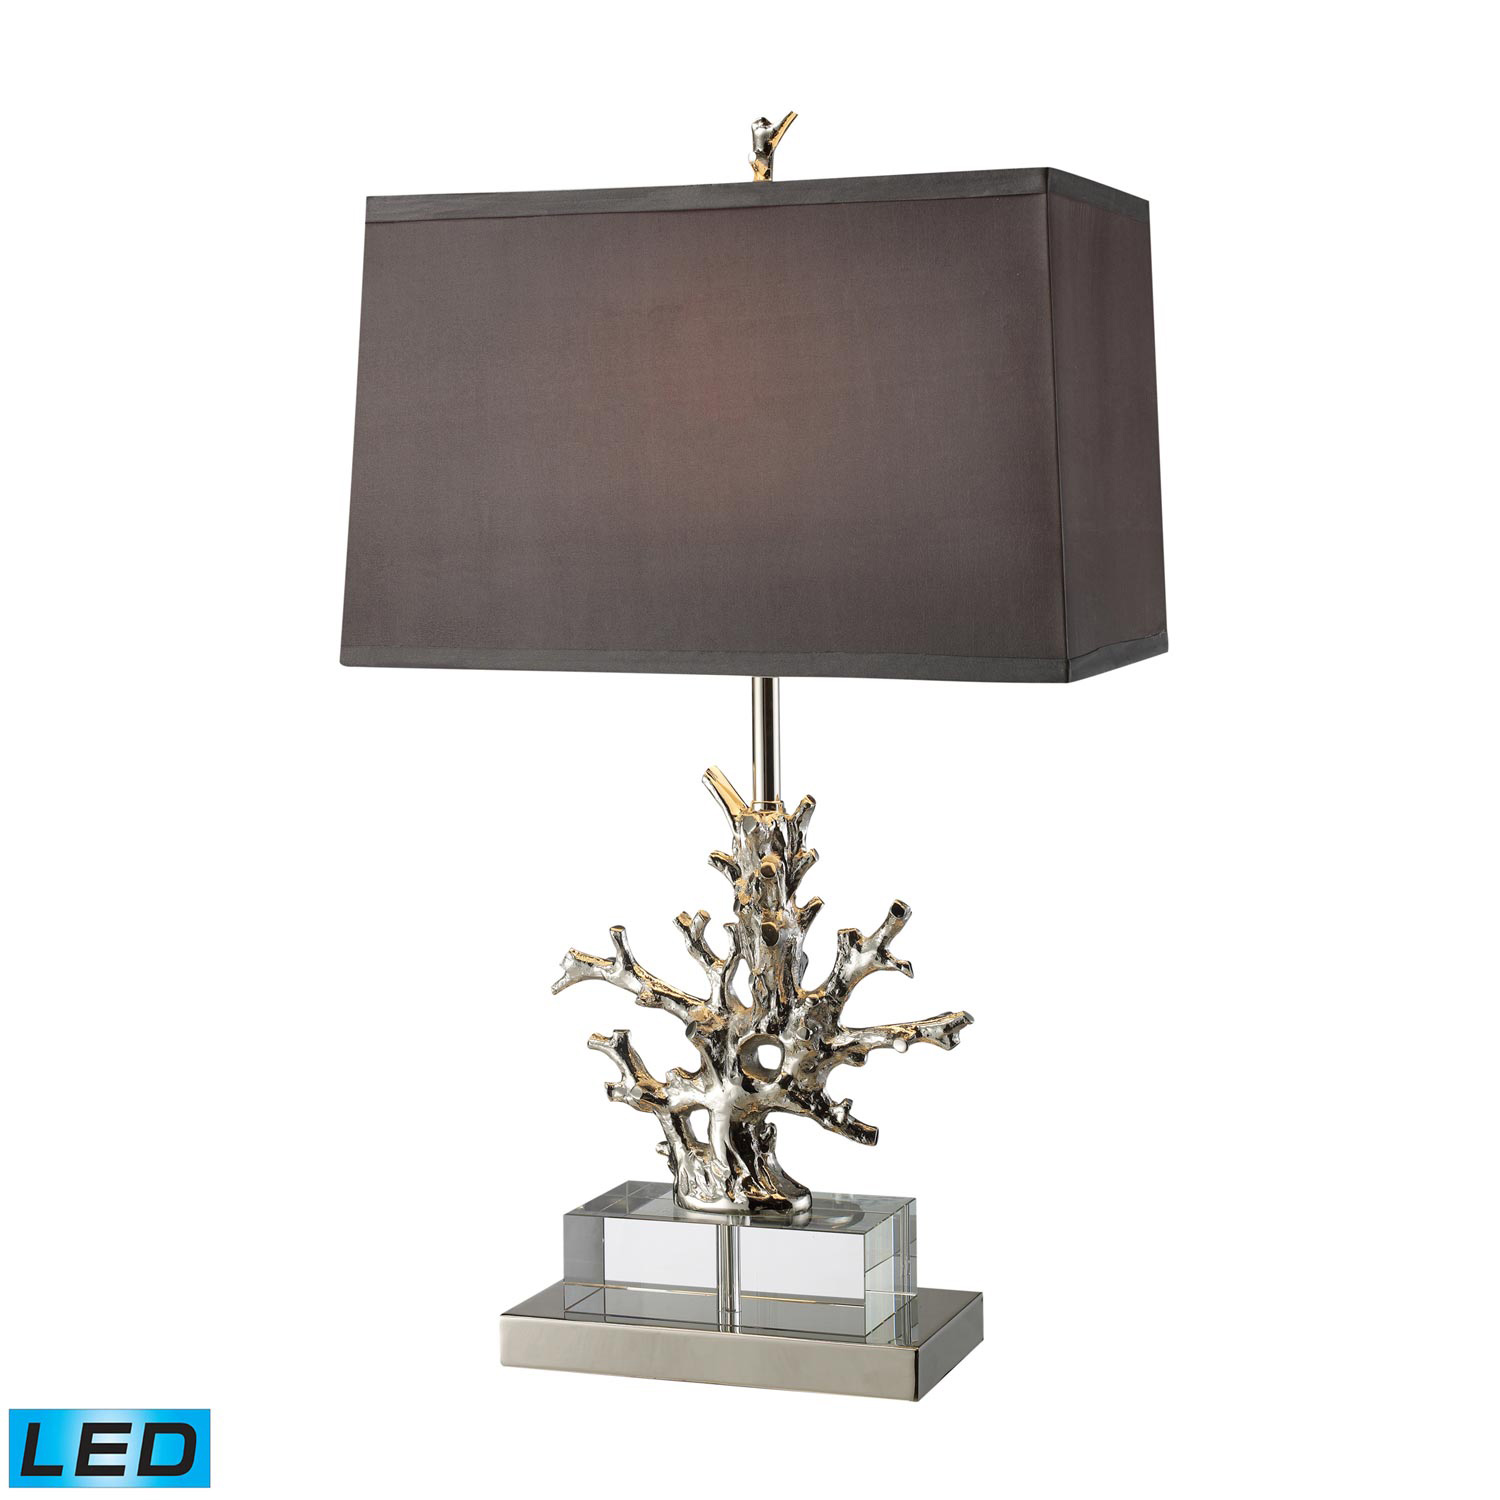 Elk Lighting D1867-LED Covington Table Lamp - Polished Nickel and Clear Crystal